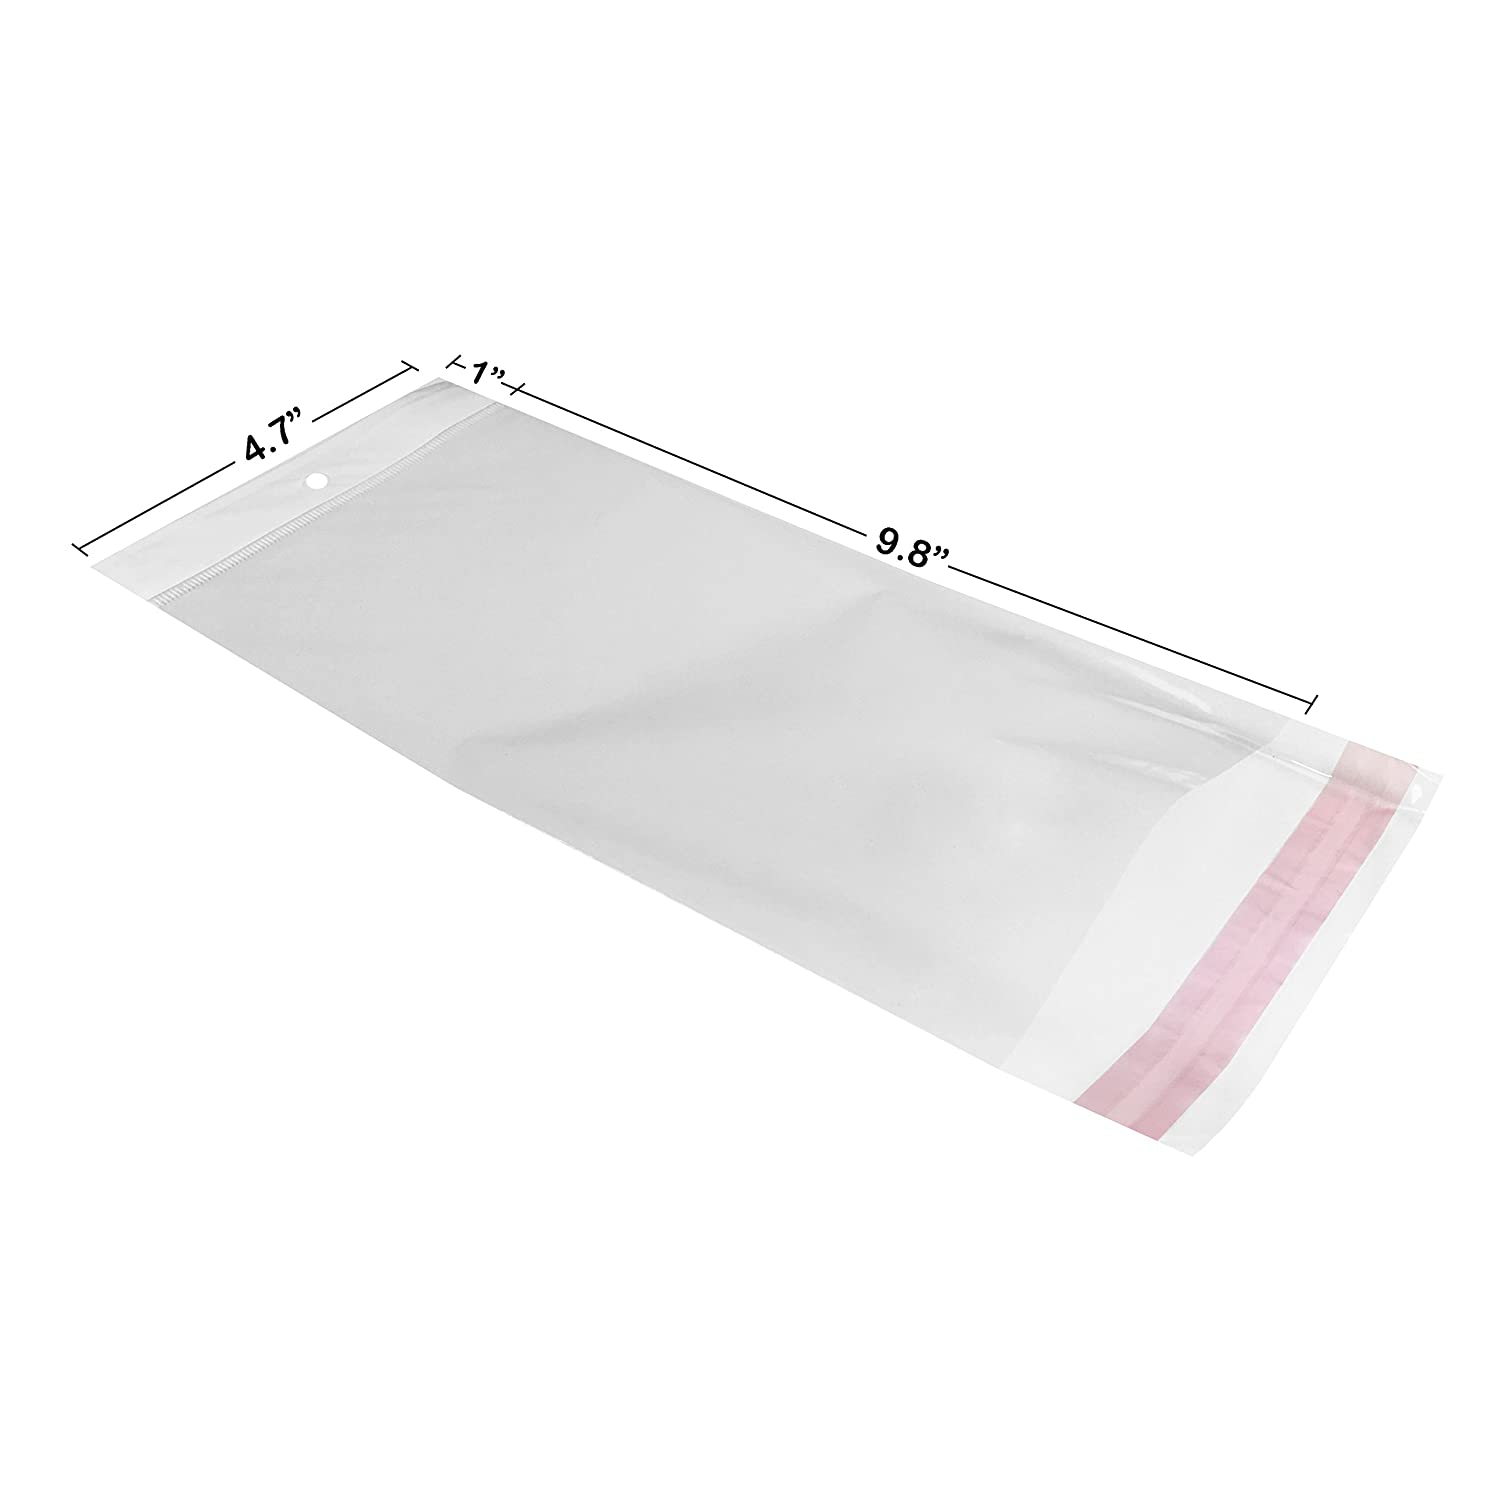 Starboxes Clear Resealable Adhesive Cellophane Bags 4.7 x 9.8 with 1.2 Lip 1.2 Mil Thick with 1 Hanging Header. Display Products with Clarity. 100